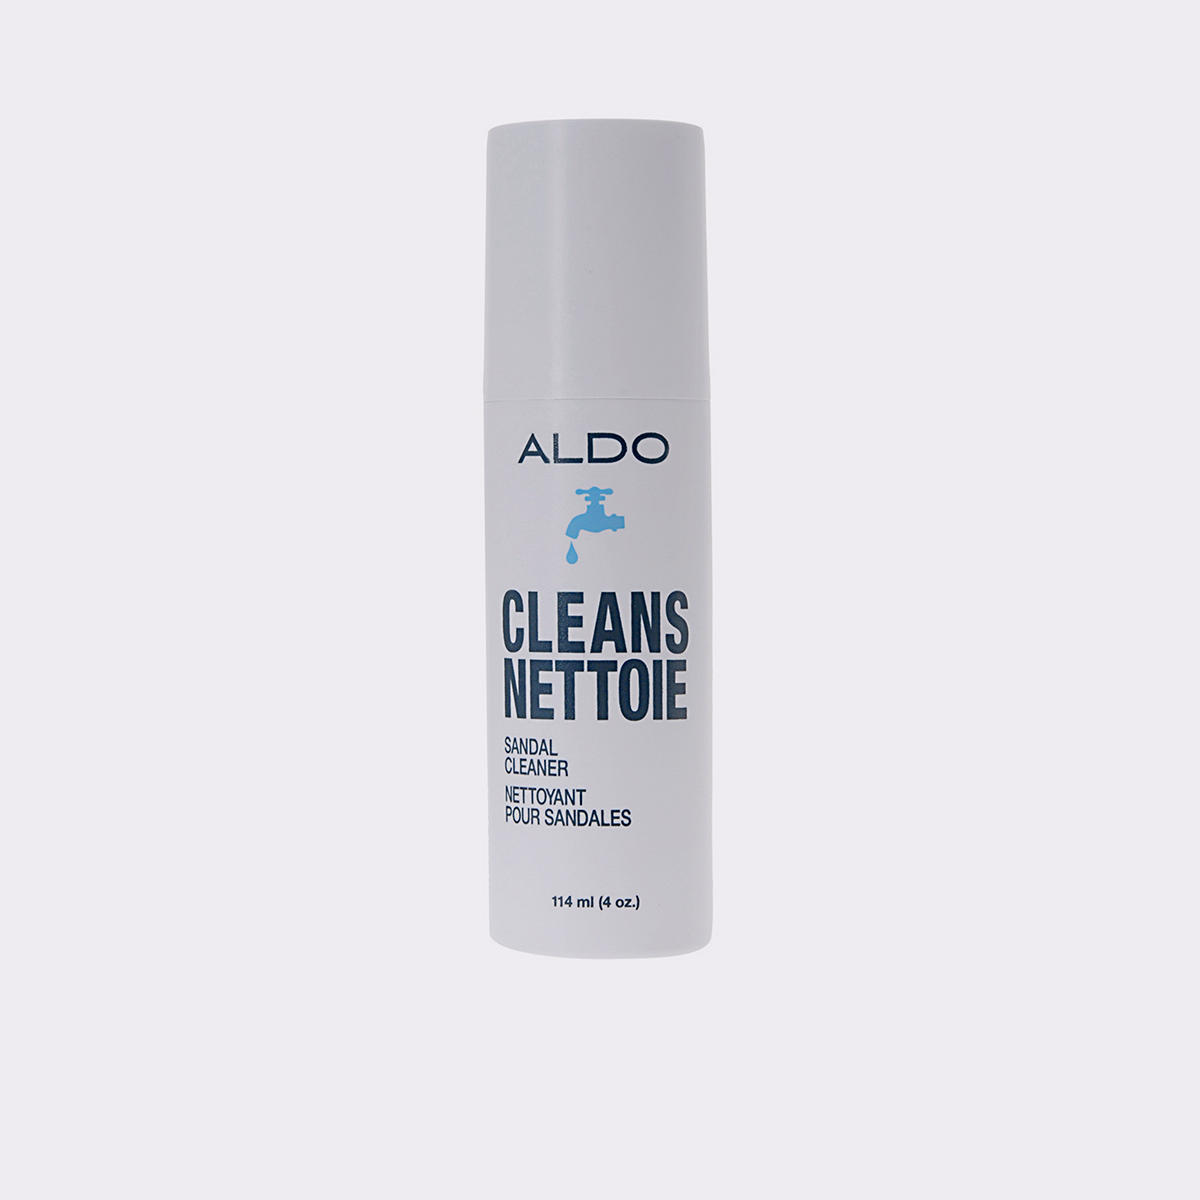 Sandal cleaner Neutral Women's Shoe care | ALDO US at Aldo Shoes in Victor, NY | Tuggl